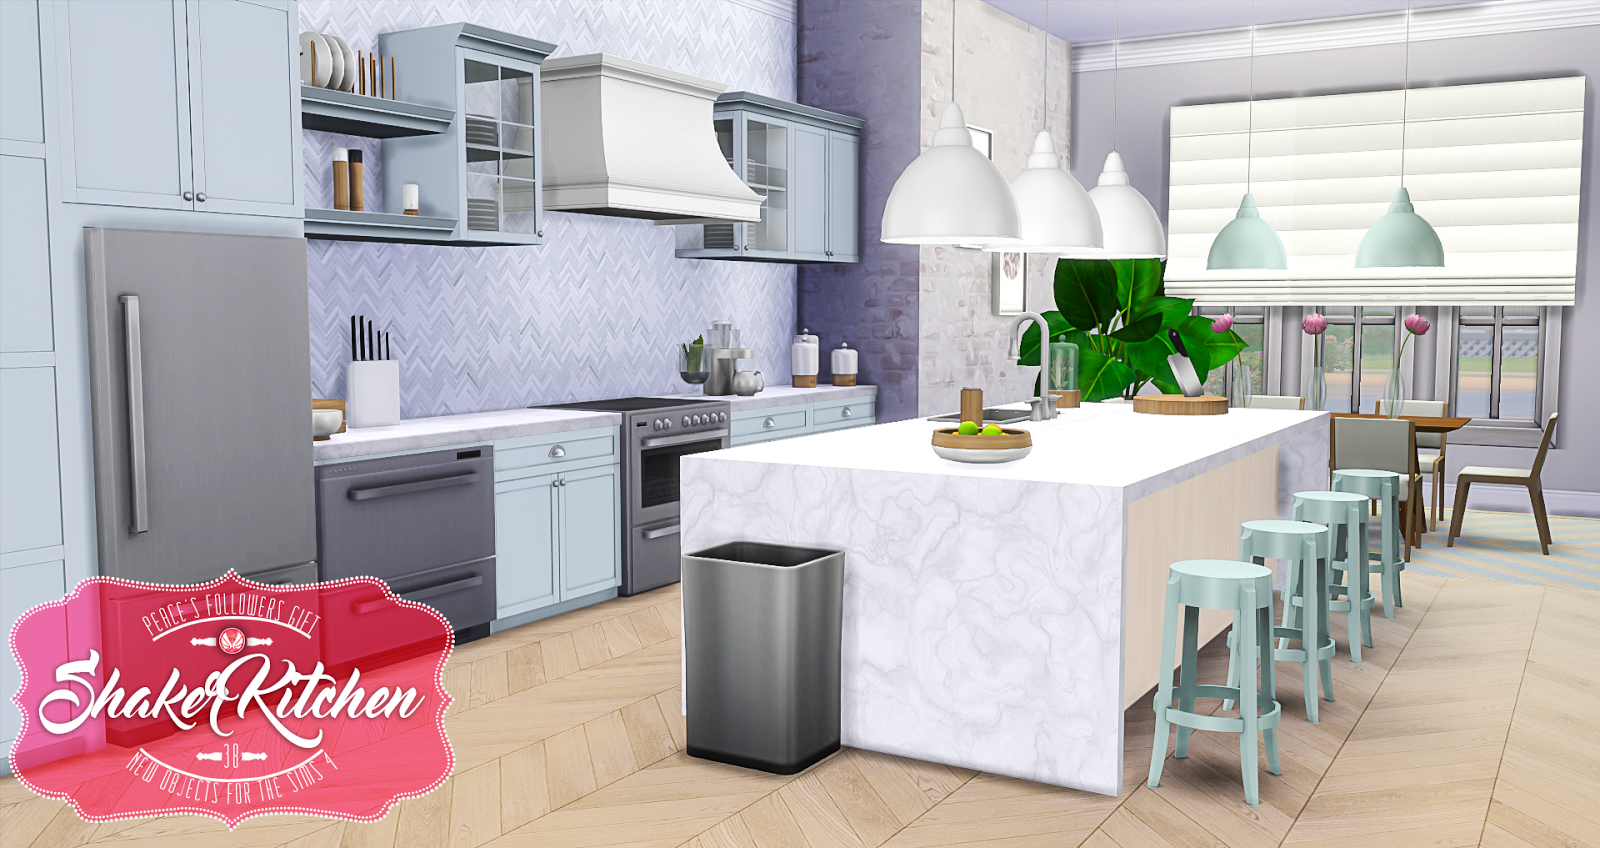 Sims Blog Shaker Kitchen Peacemaker